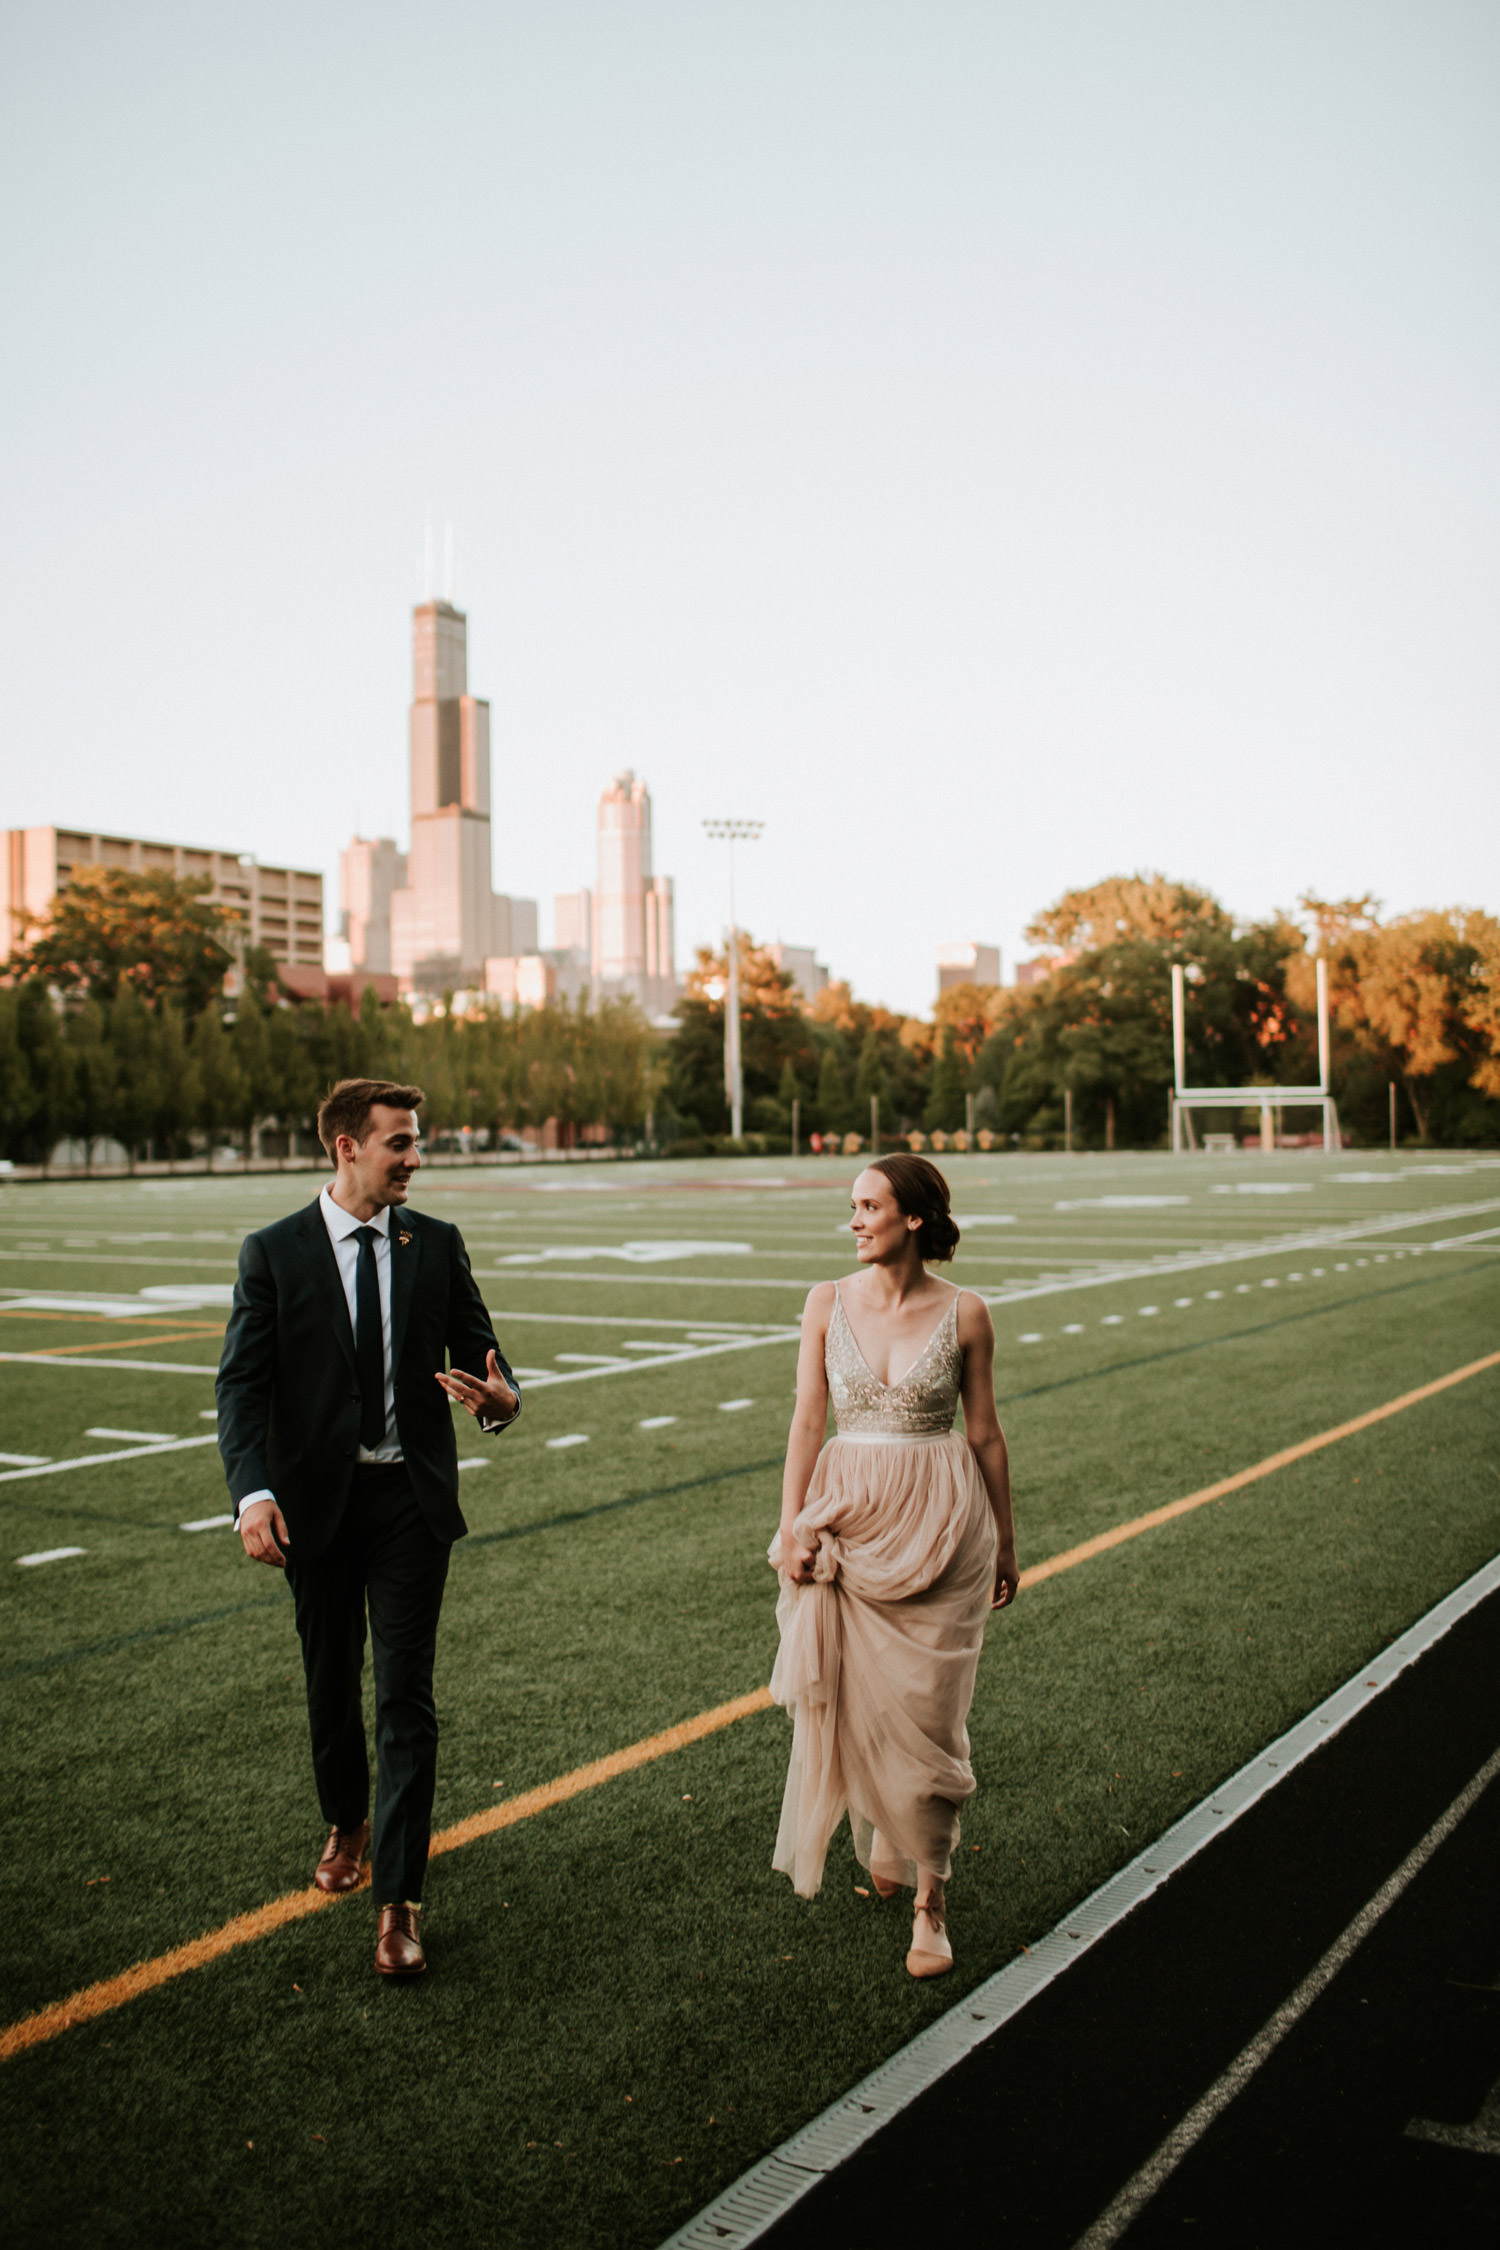 Bride and groom walk on the football field in Chicago